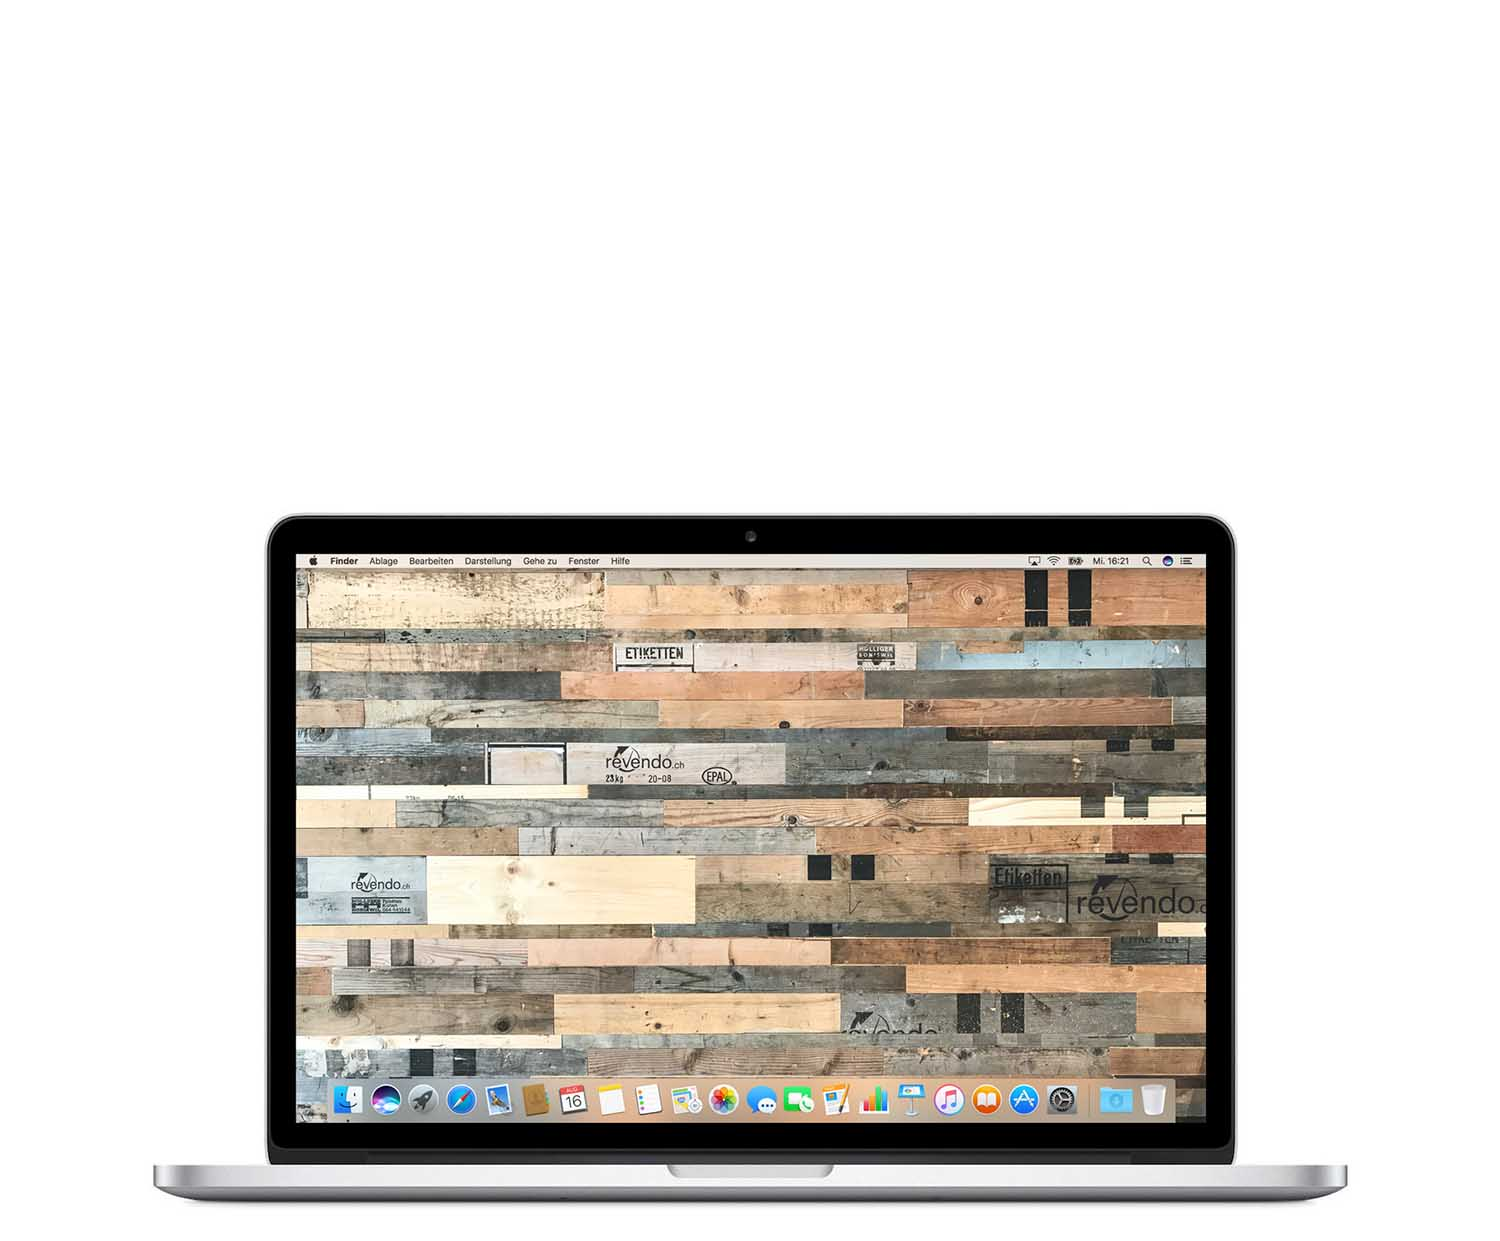 macbook pro 15 mit touch bar 2 7 ghz core i7 1 tb ssd. Black Bedroom Furniture Sets. Home Design Ideas